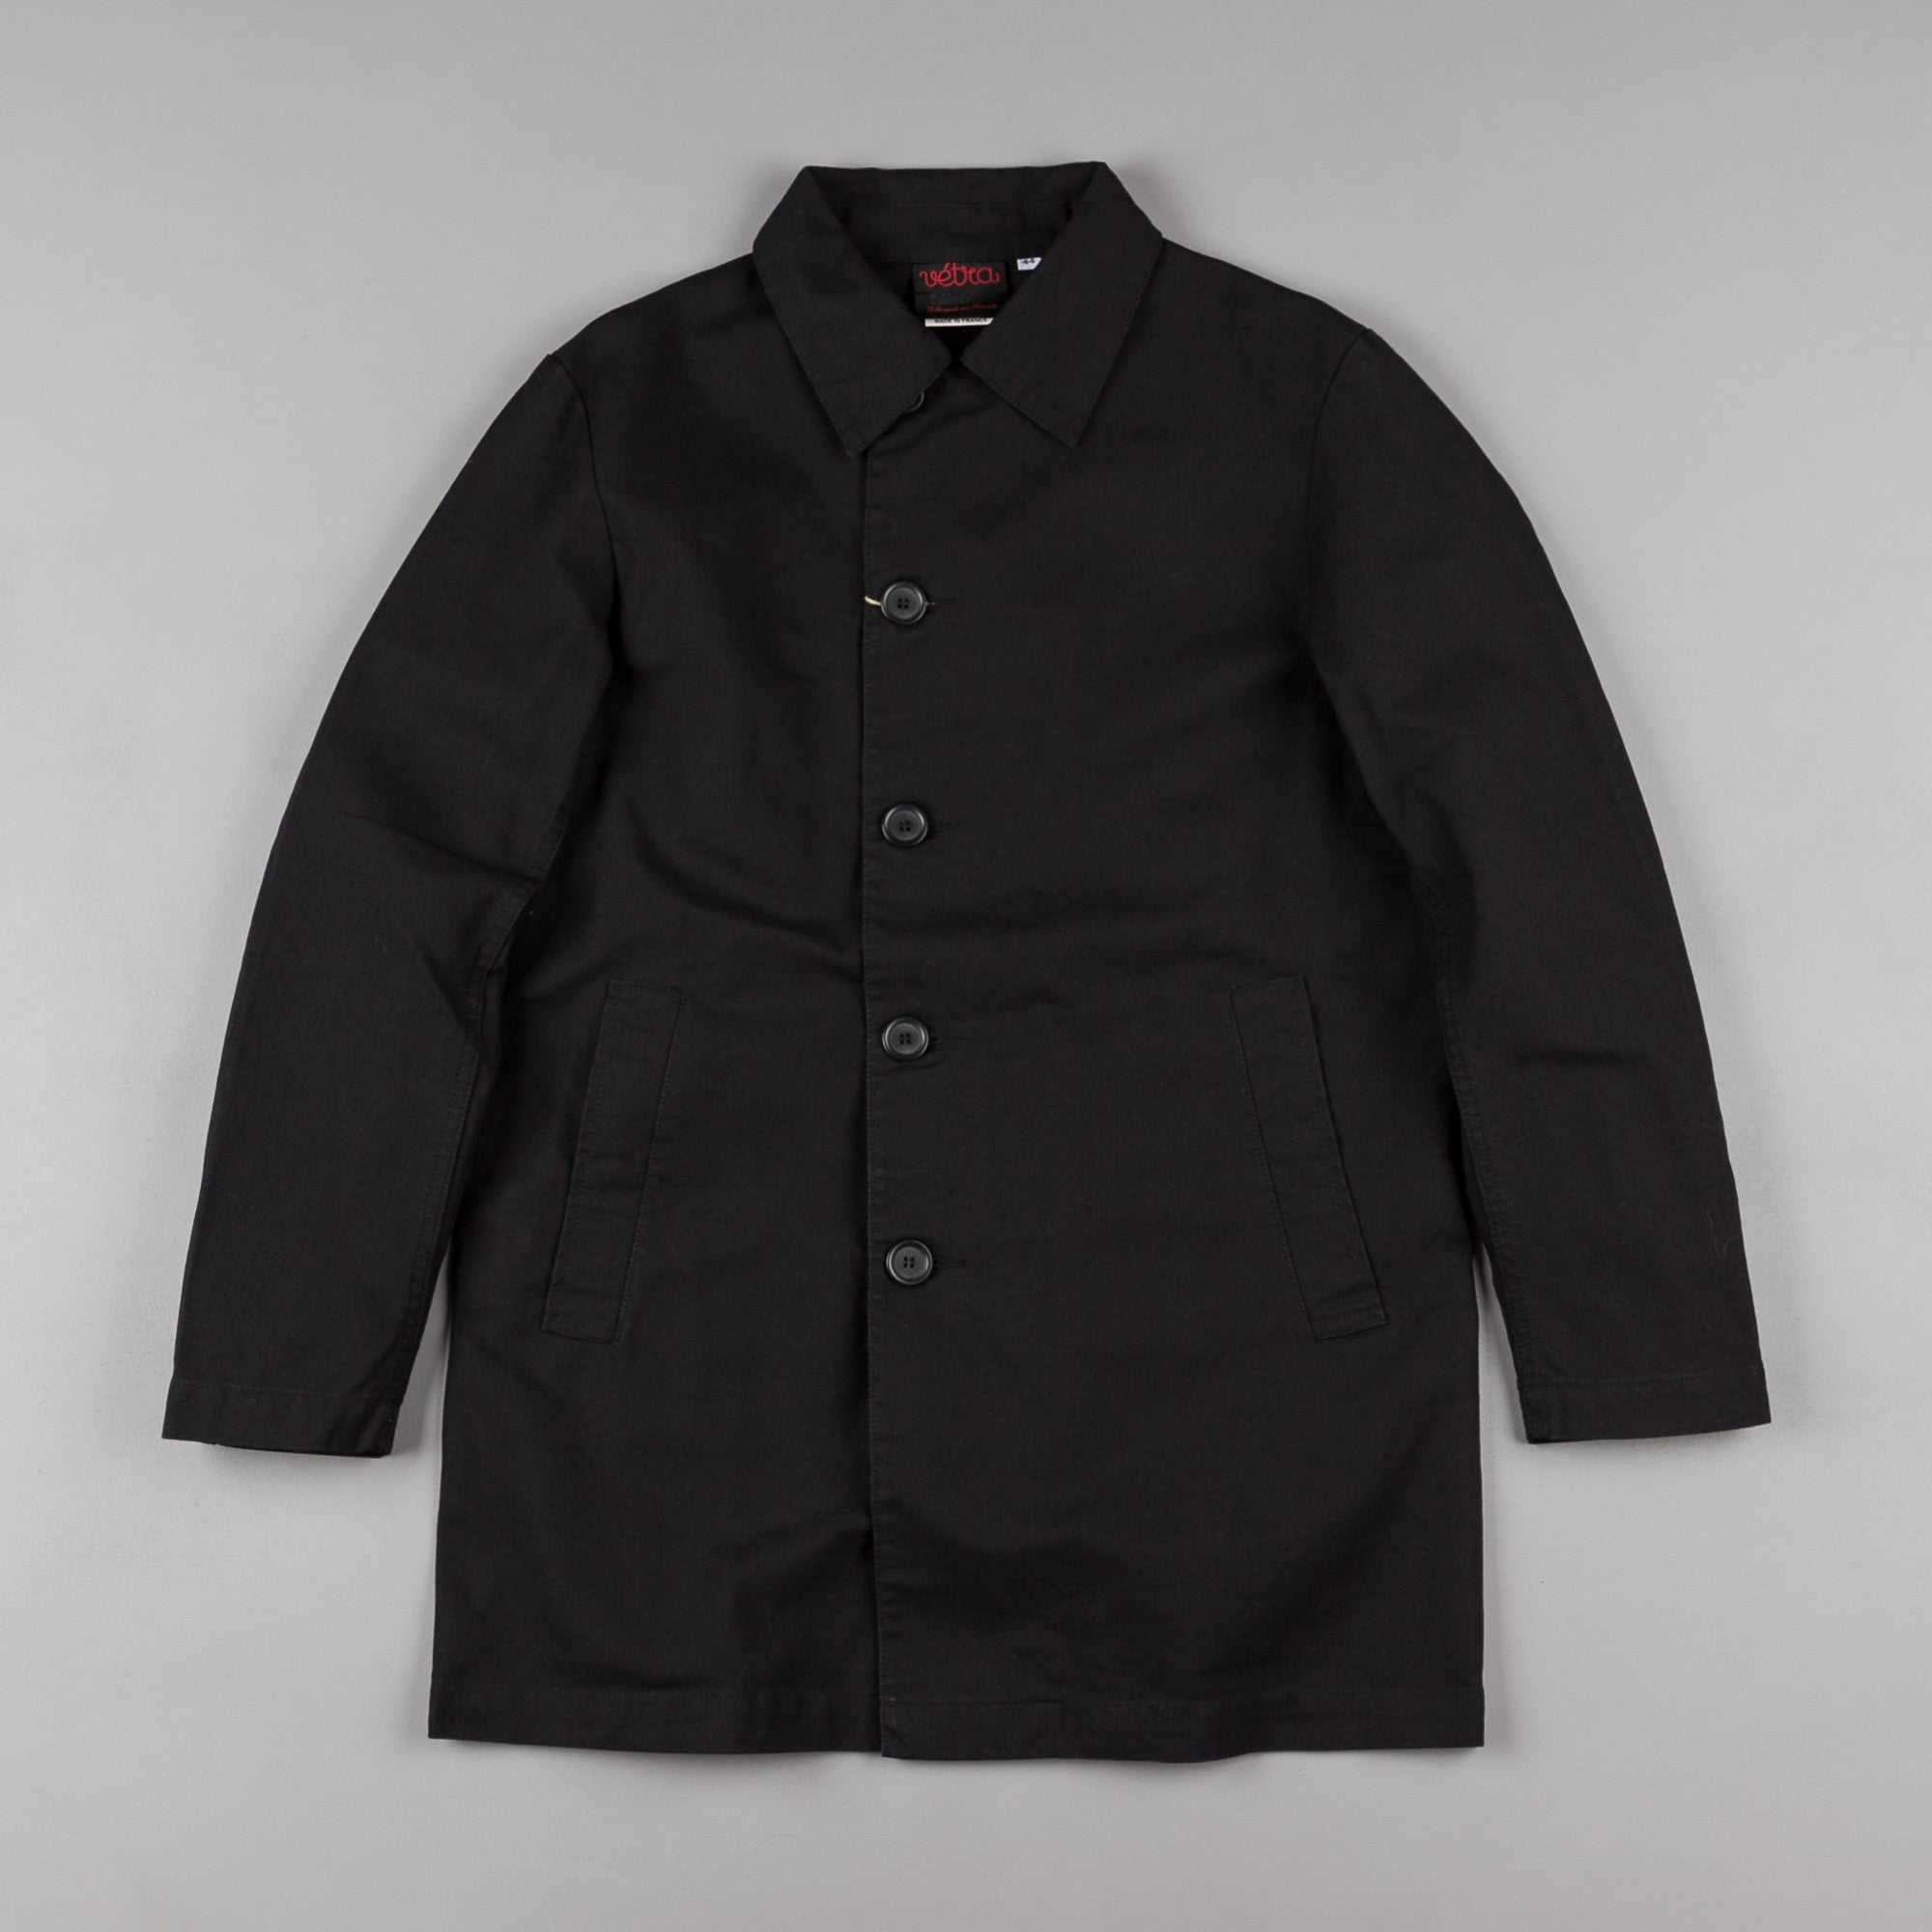 Vetra No.231 Workwear Jacket - Black